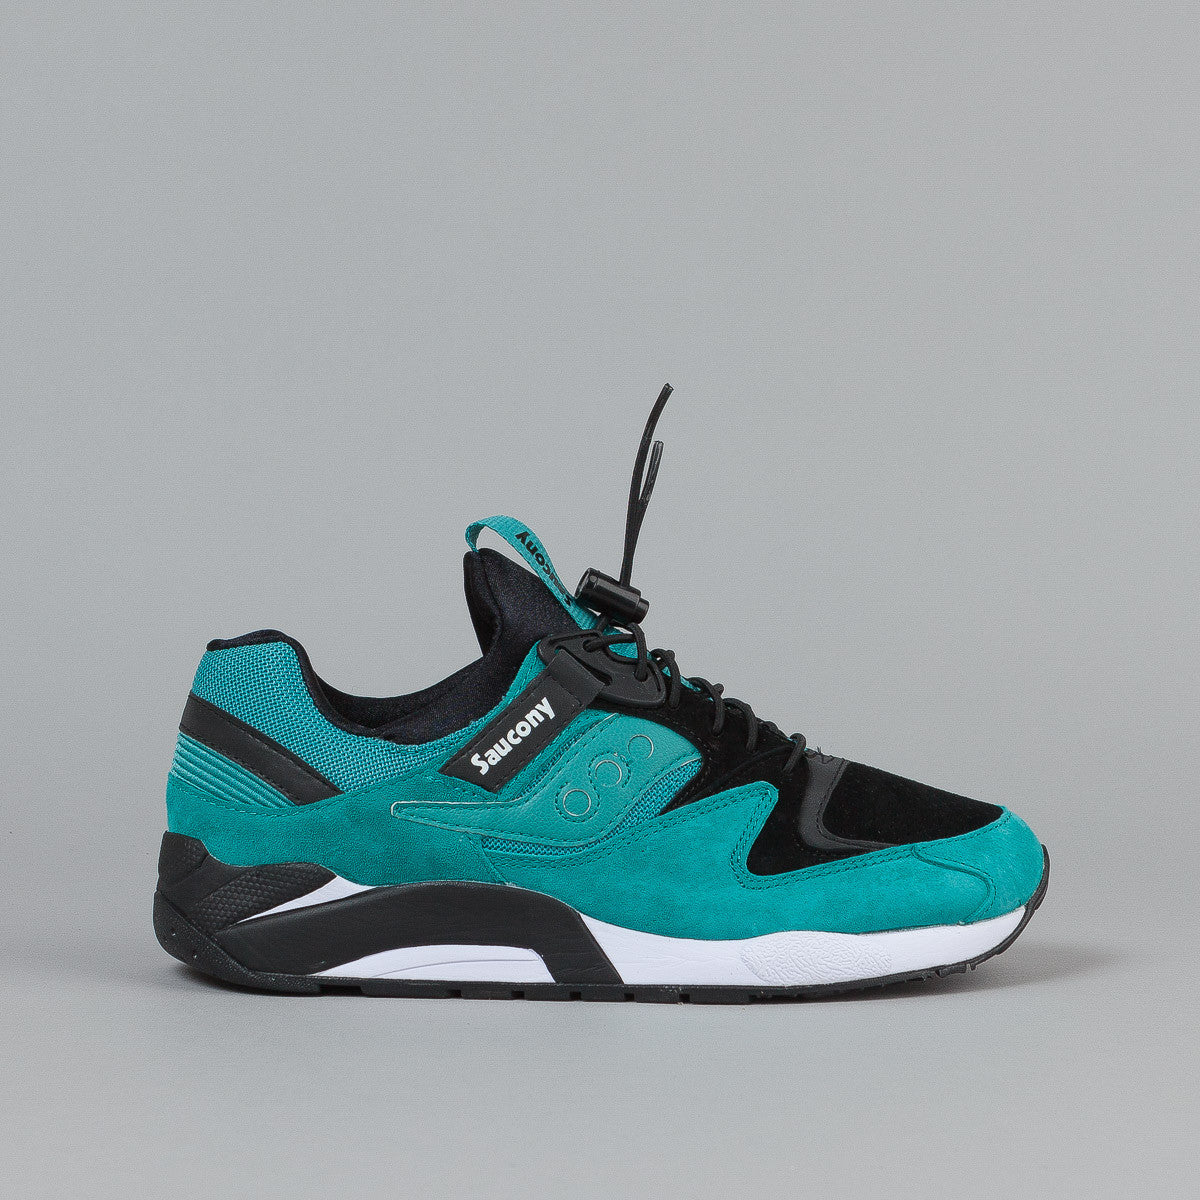 Saucony Grid 9000 Premium - Green / Black